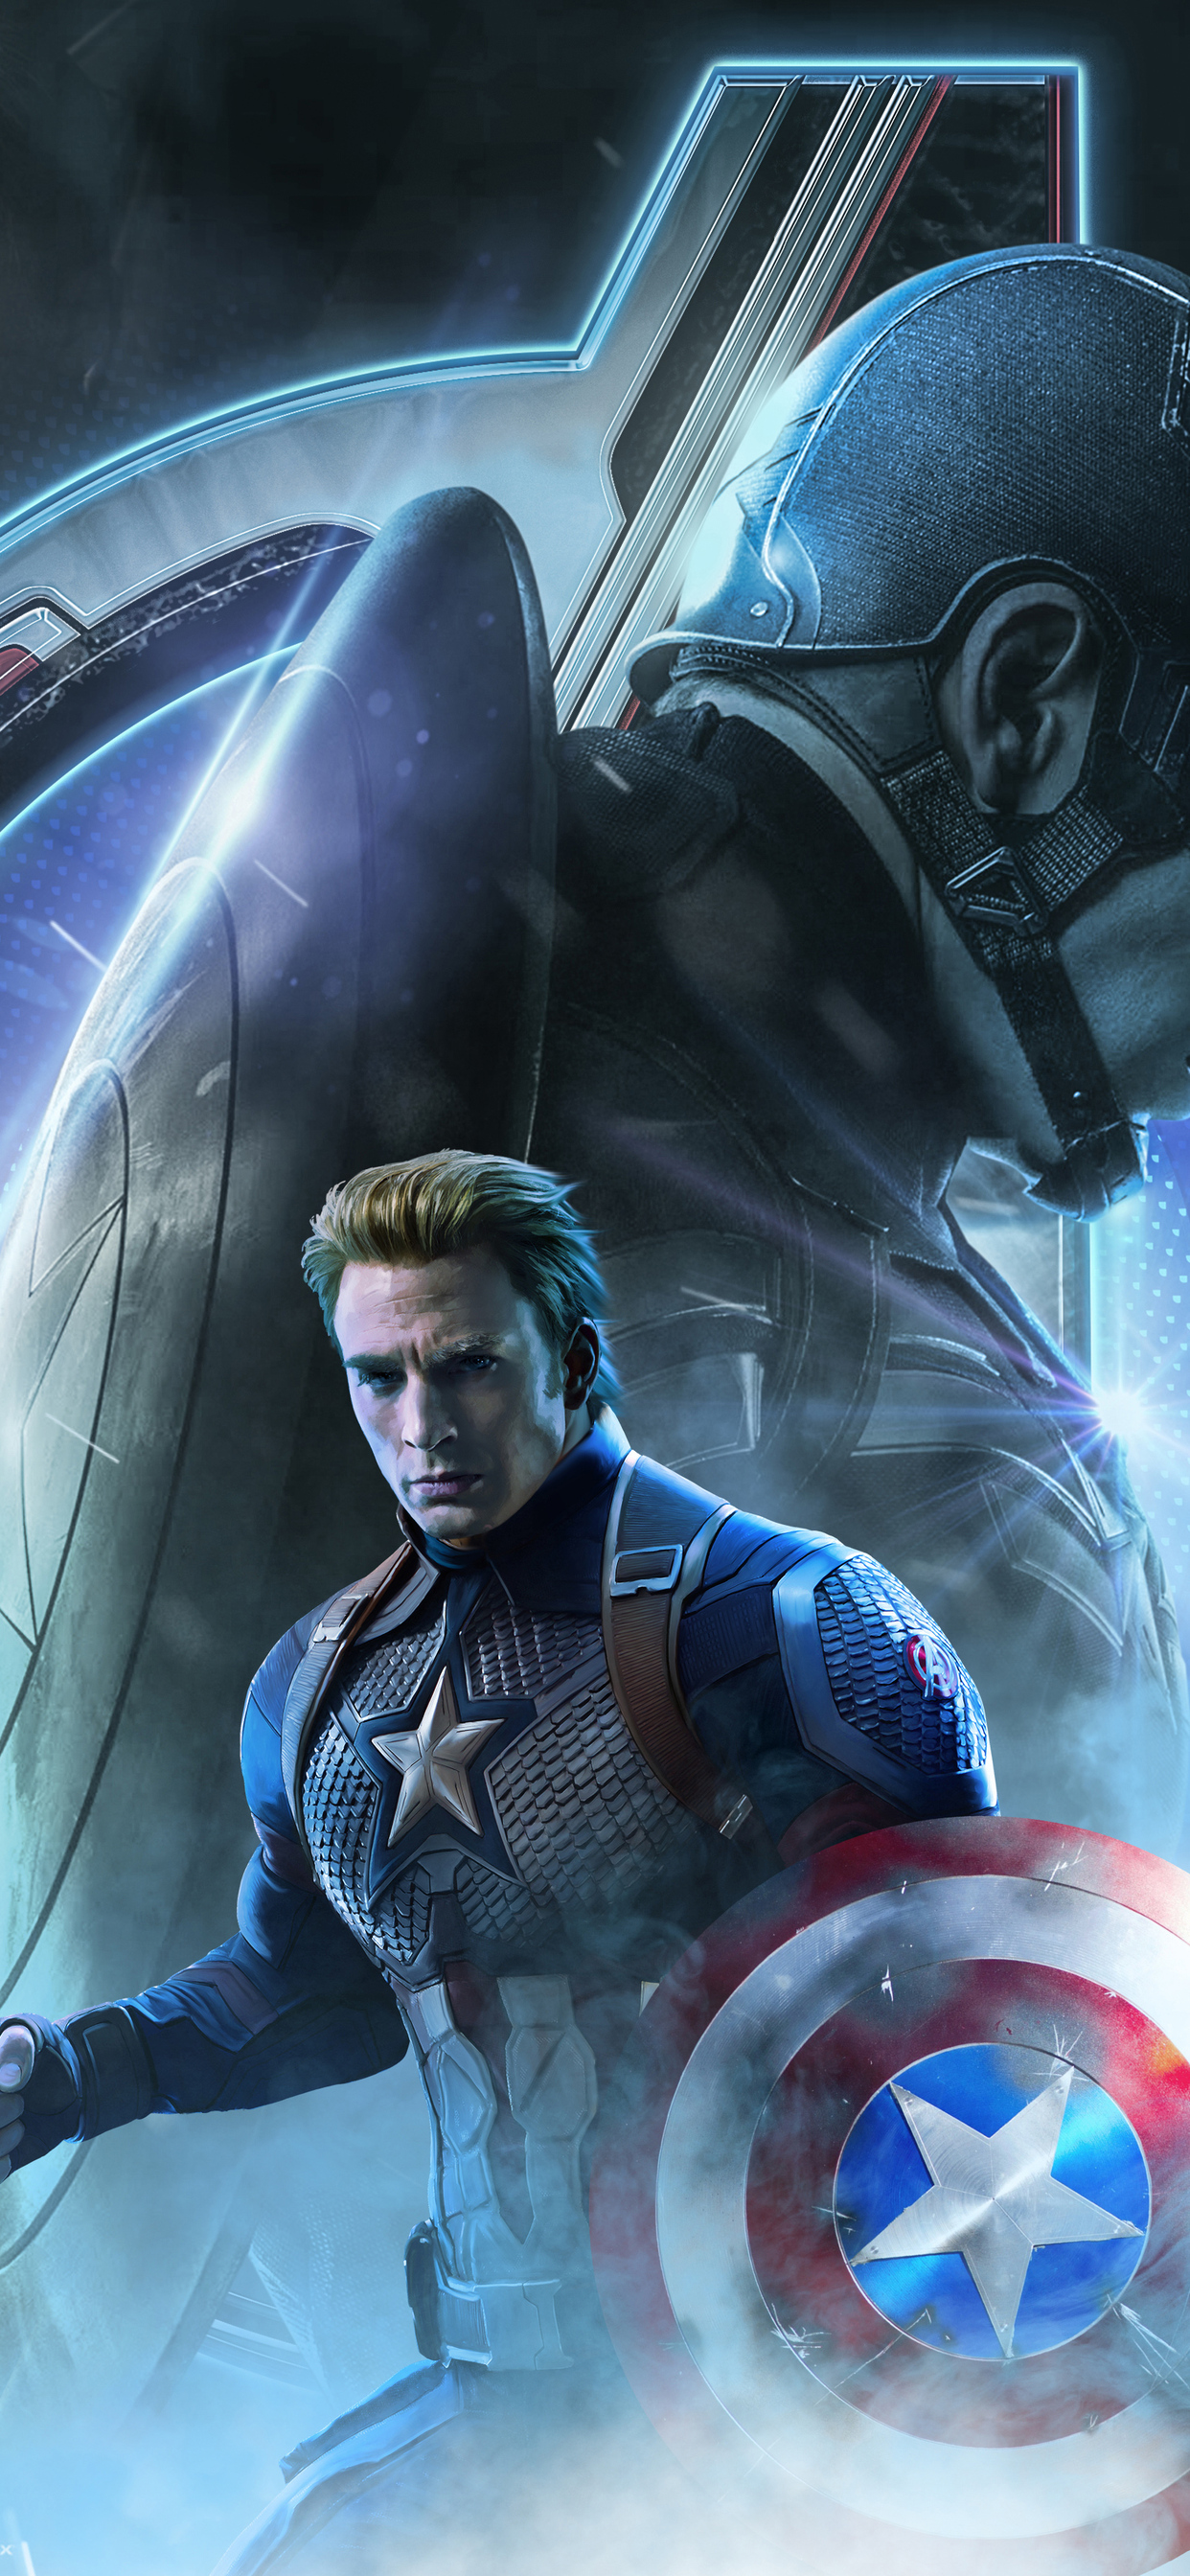 1242x2688 Captain America In Avengers Endgame 2019 Iphone Xs Max Hd